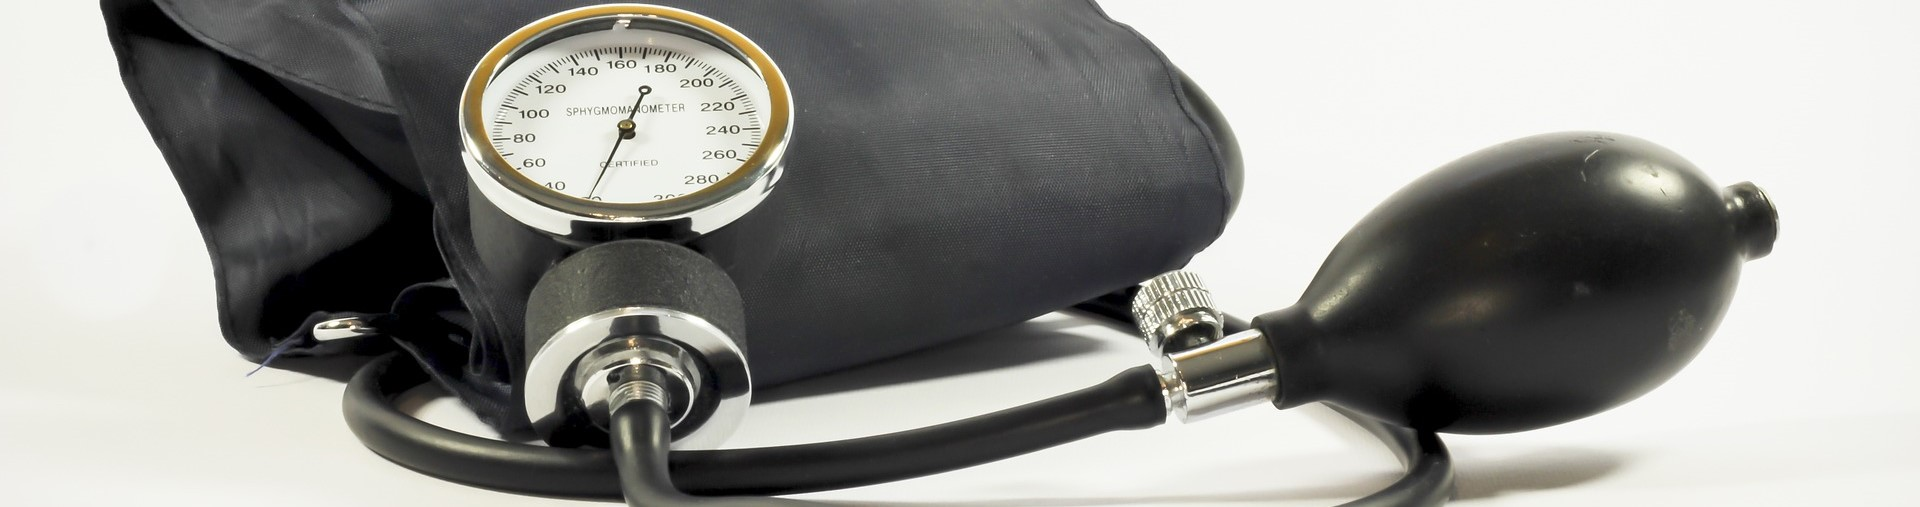 Sphygmomanometer, the device used to measure blood pressure | Breast Cancer Car Donations